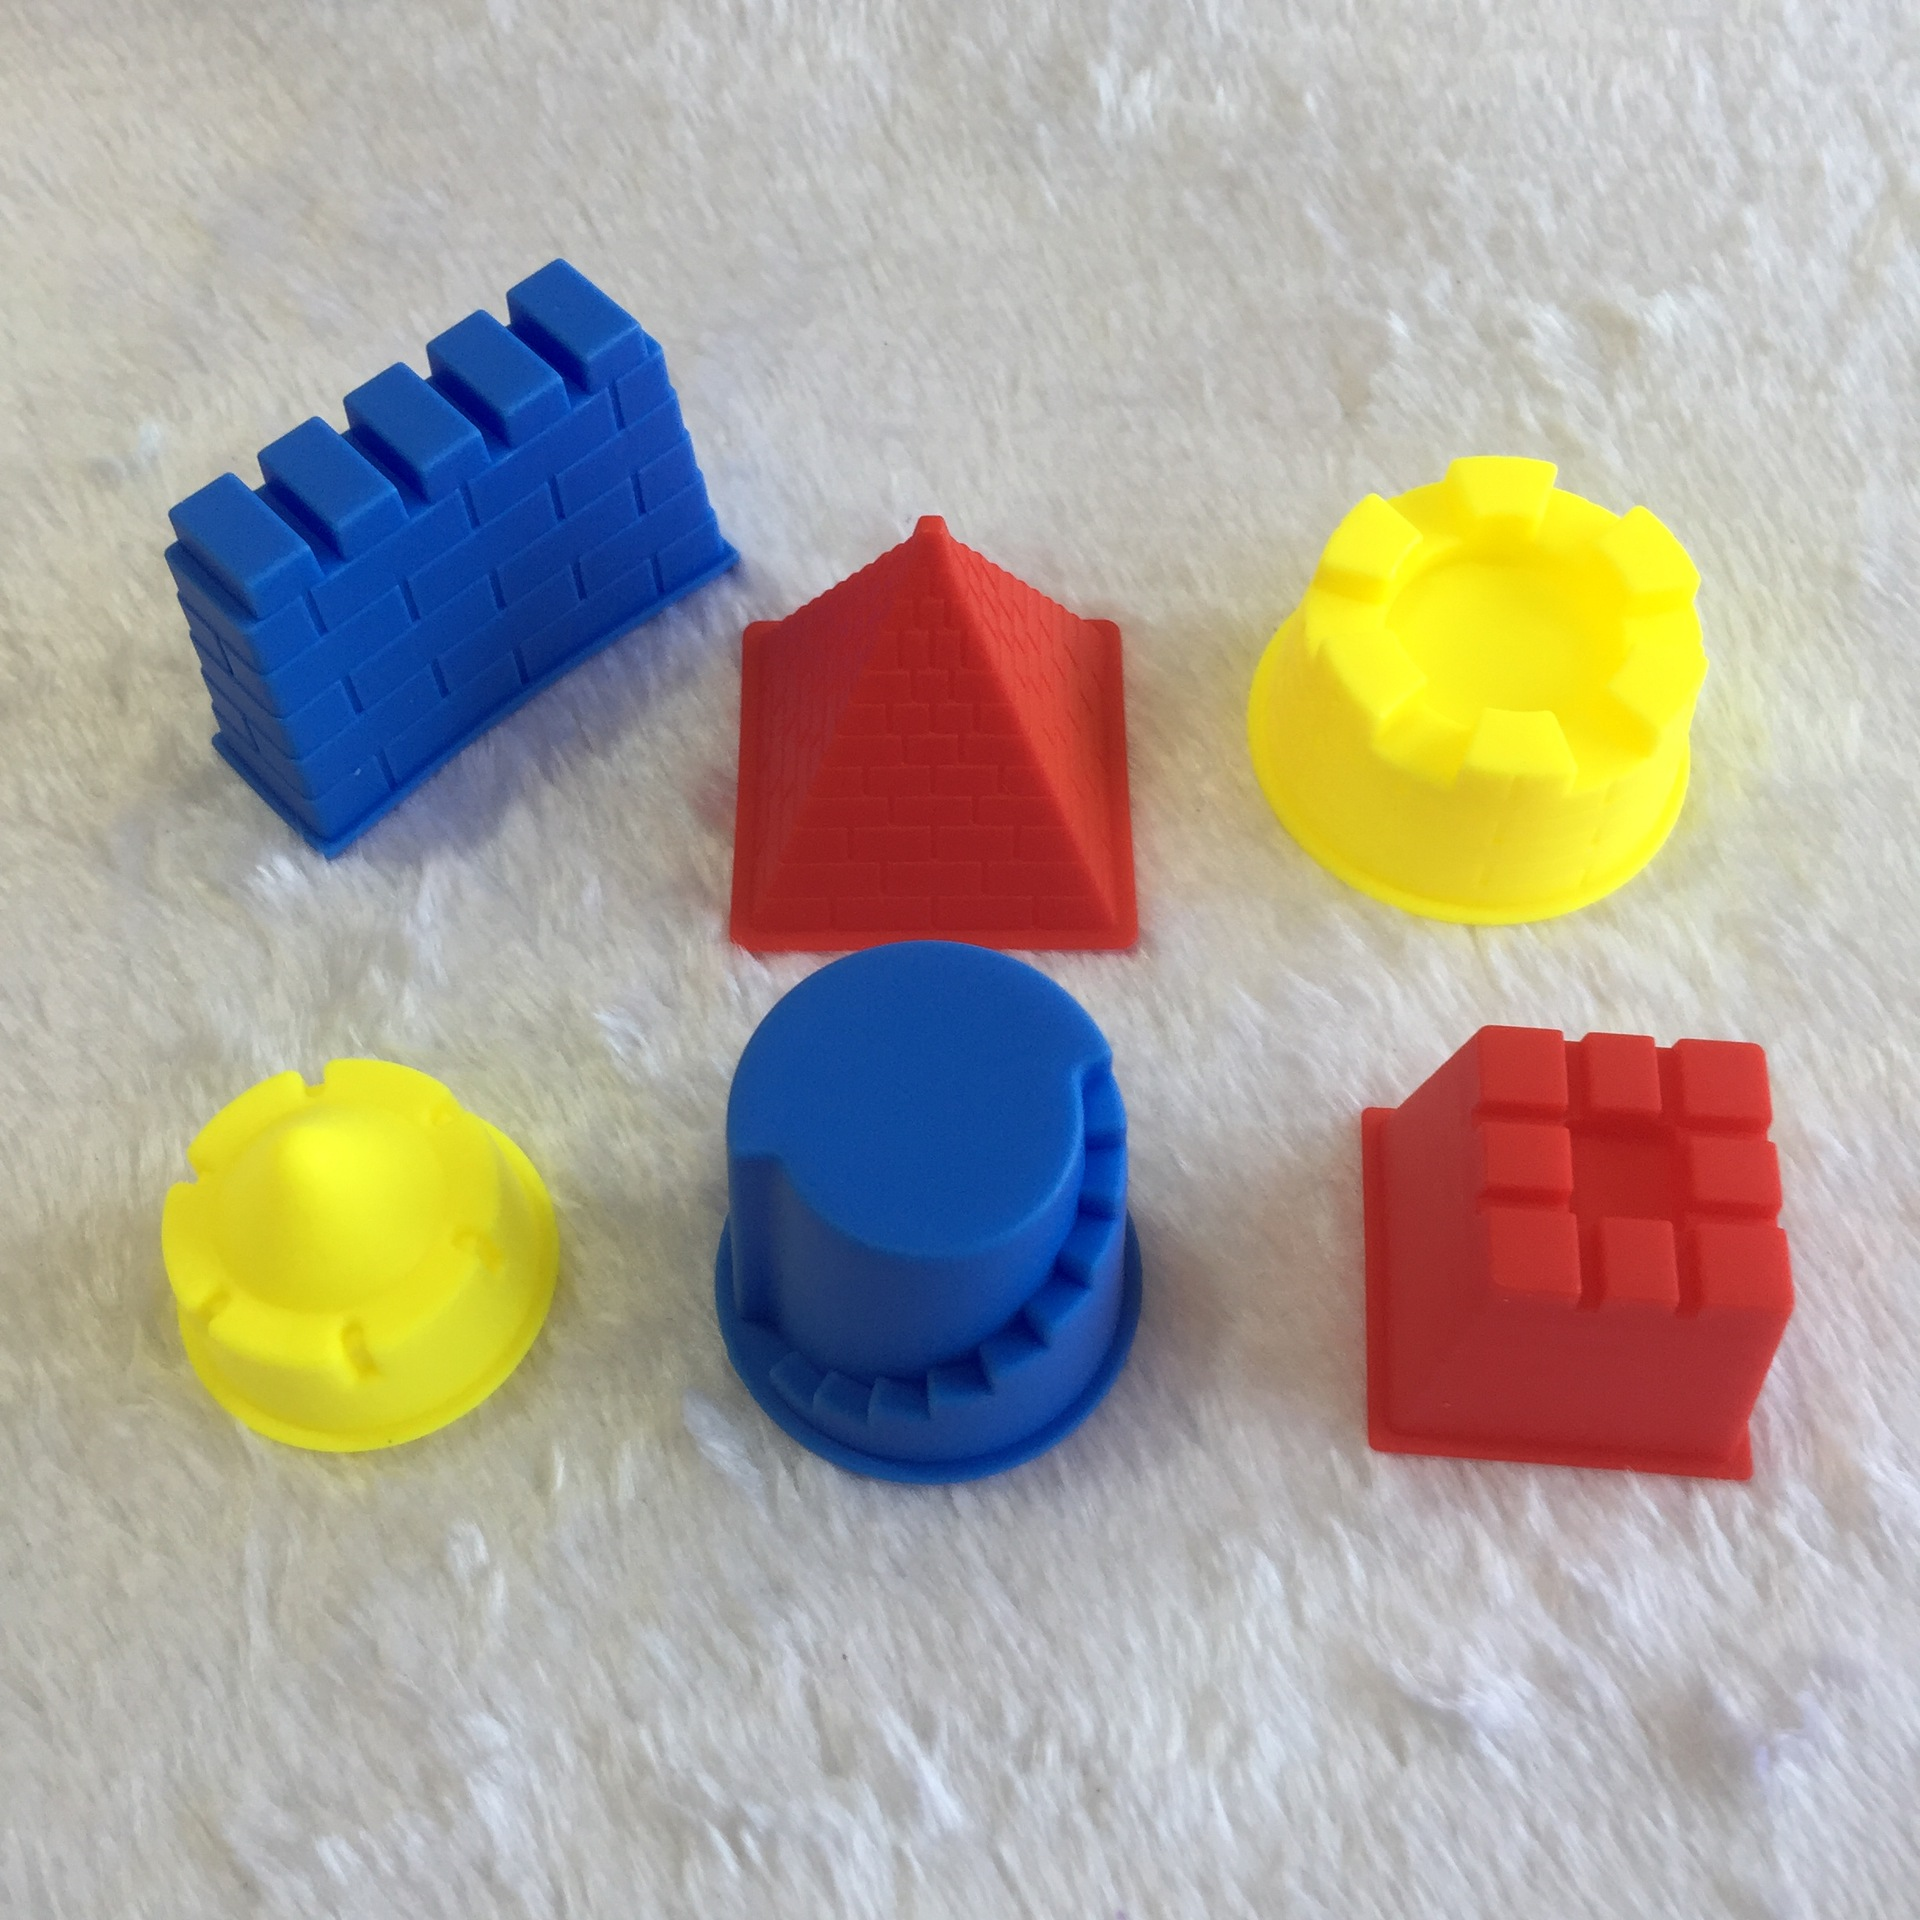 6pcs Small Child Kid Model Building Kits Portable Castle Sand Clay Mold Building Pyramid Sandcastle Beach Sand Toy